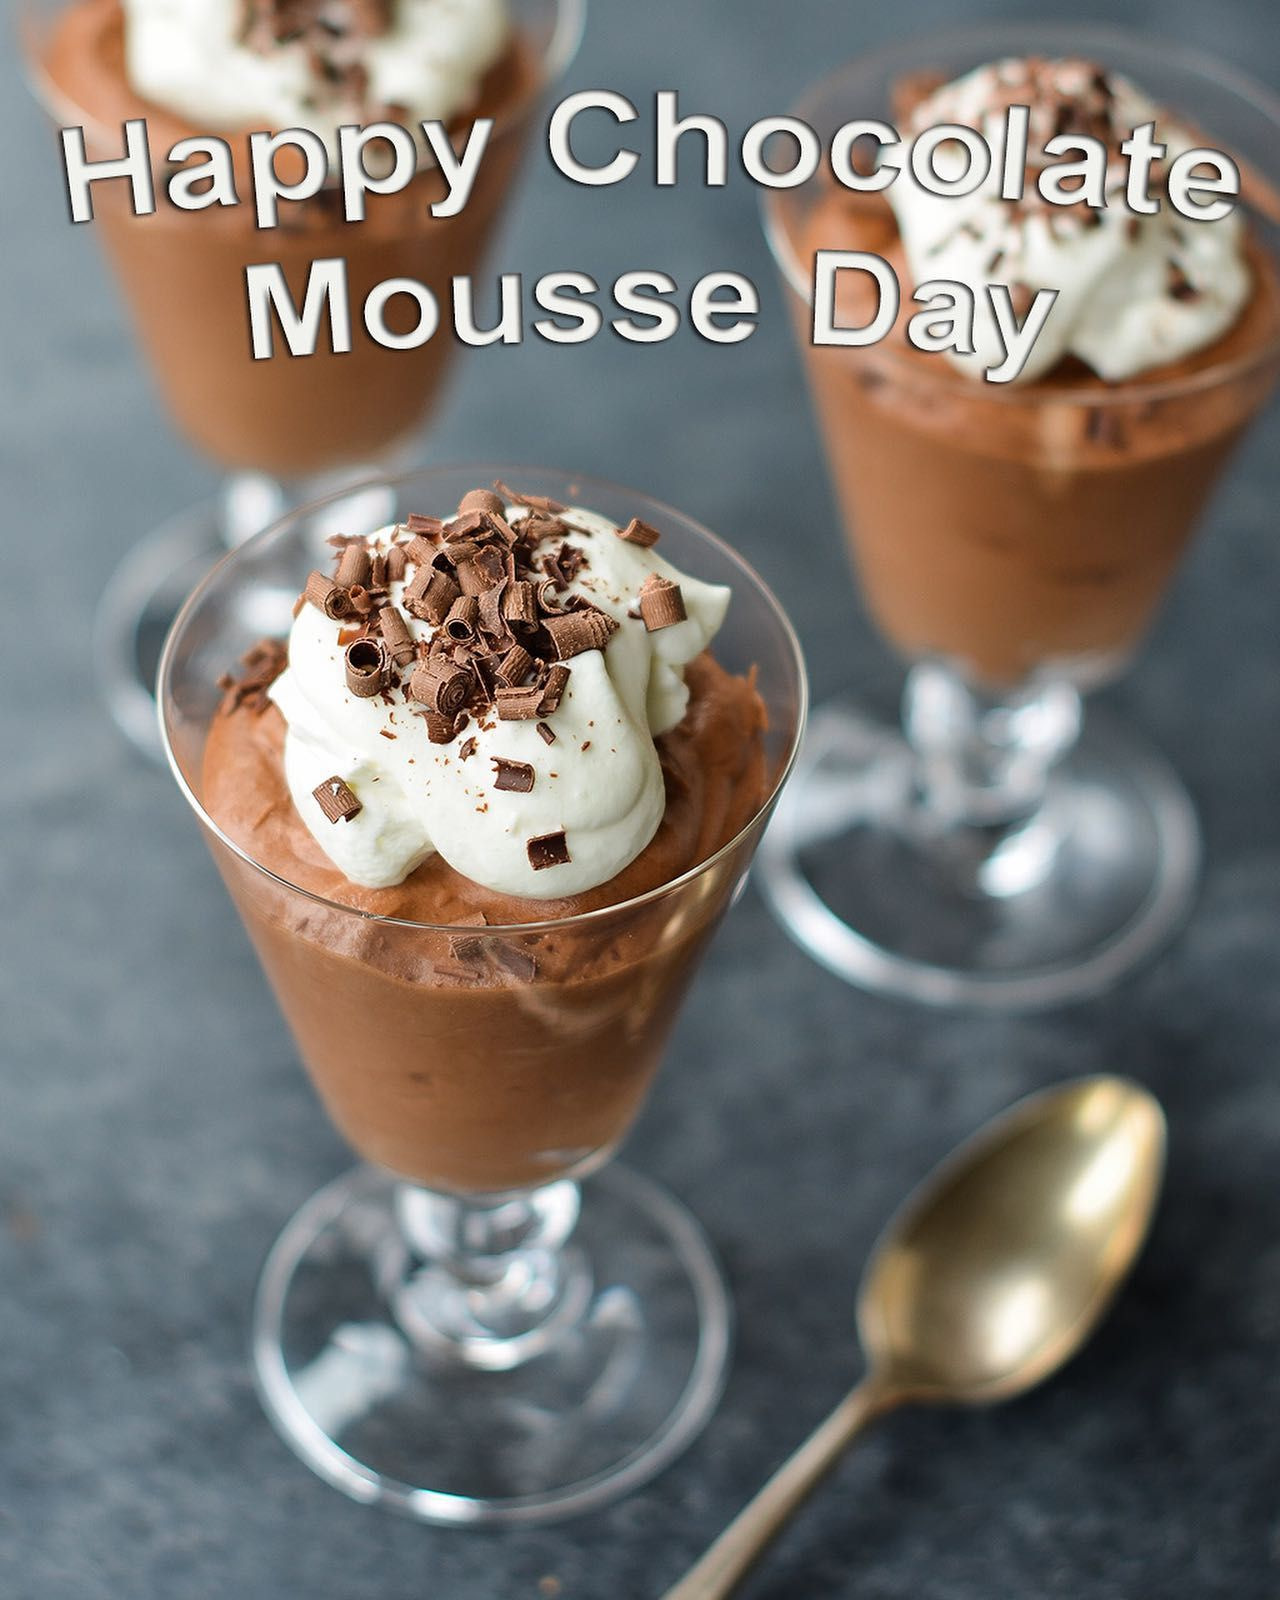 This is this best kind of mouse! www.rksshots.com #potd #instalike #igers #mousse #chocolatemousse